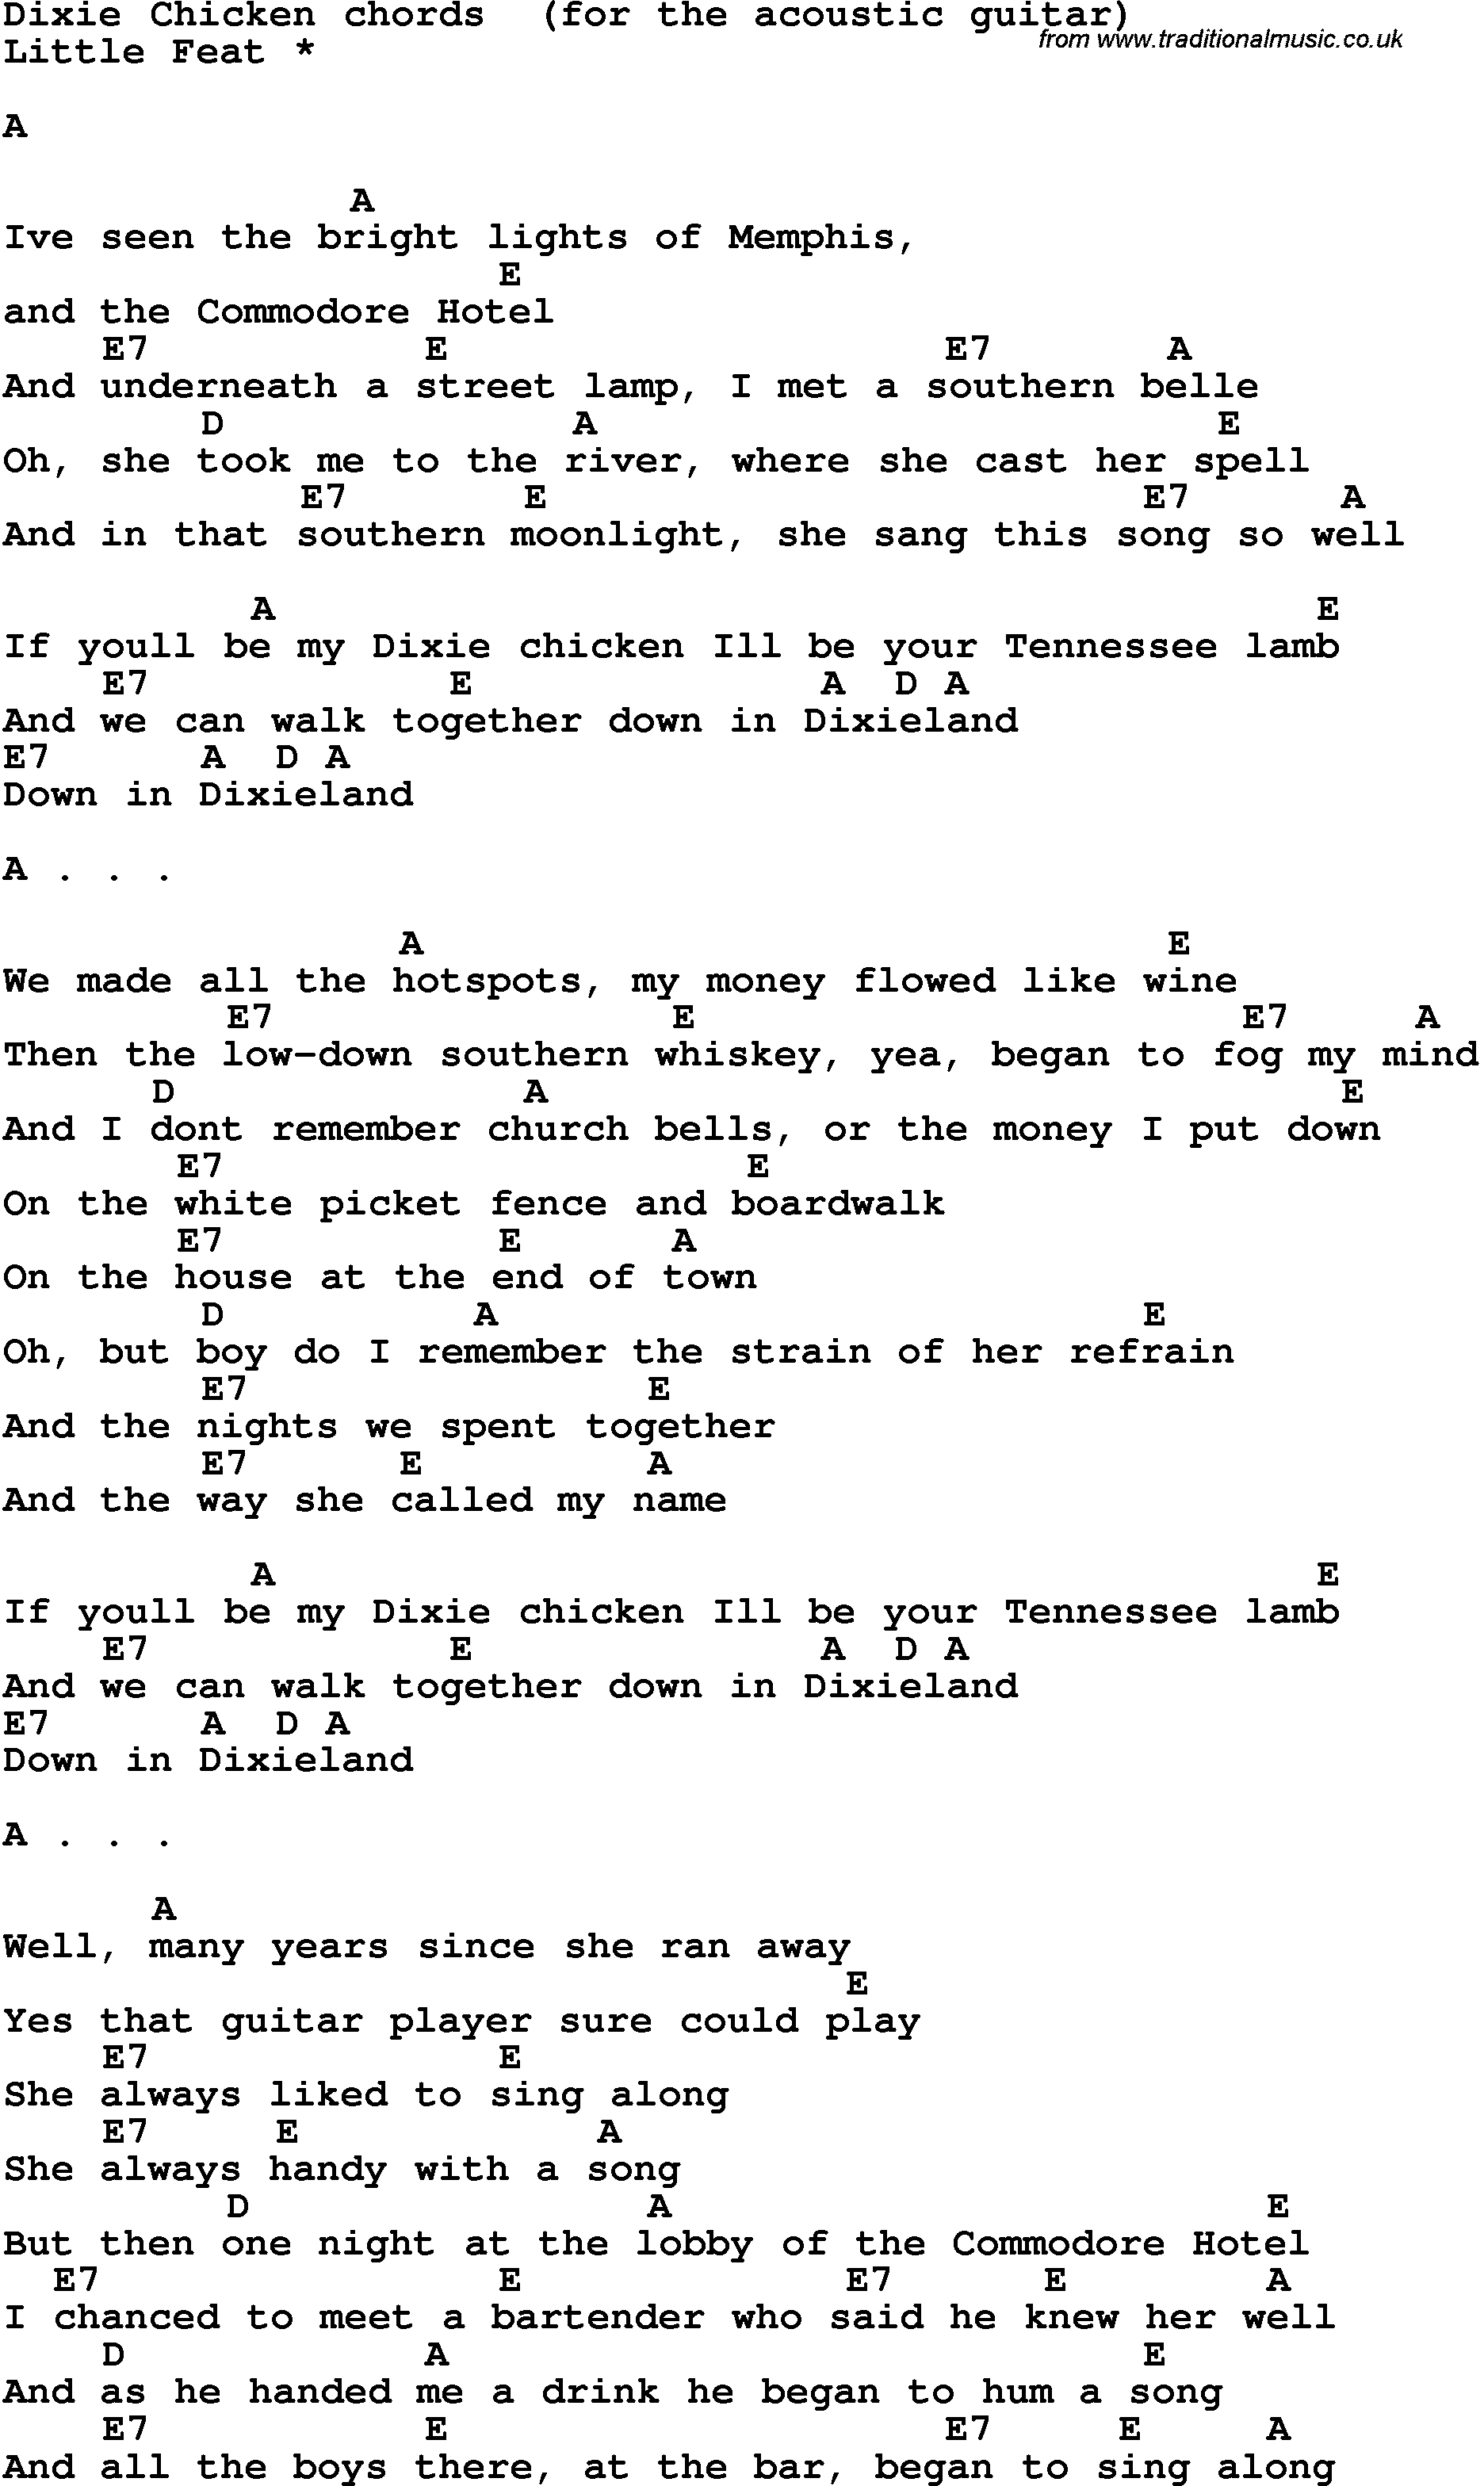 Song Lyrics With Guitar Chords For Dixie Chicken